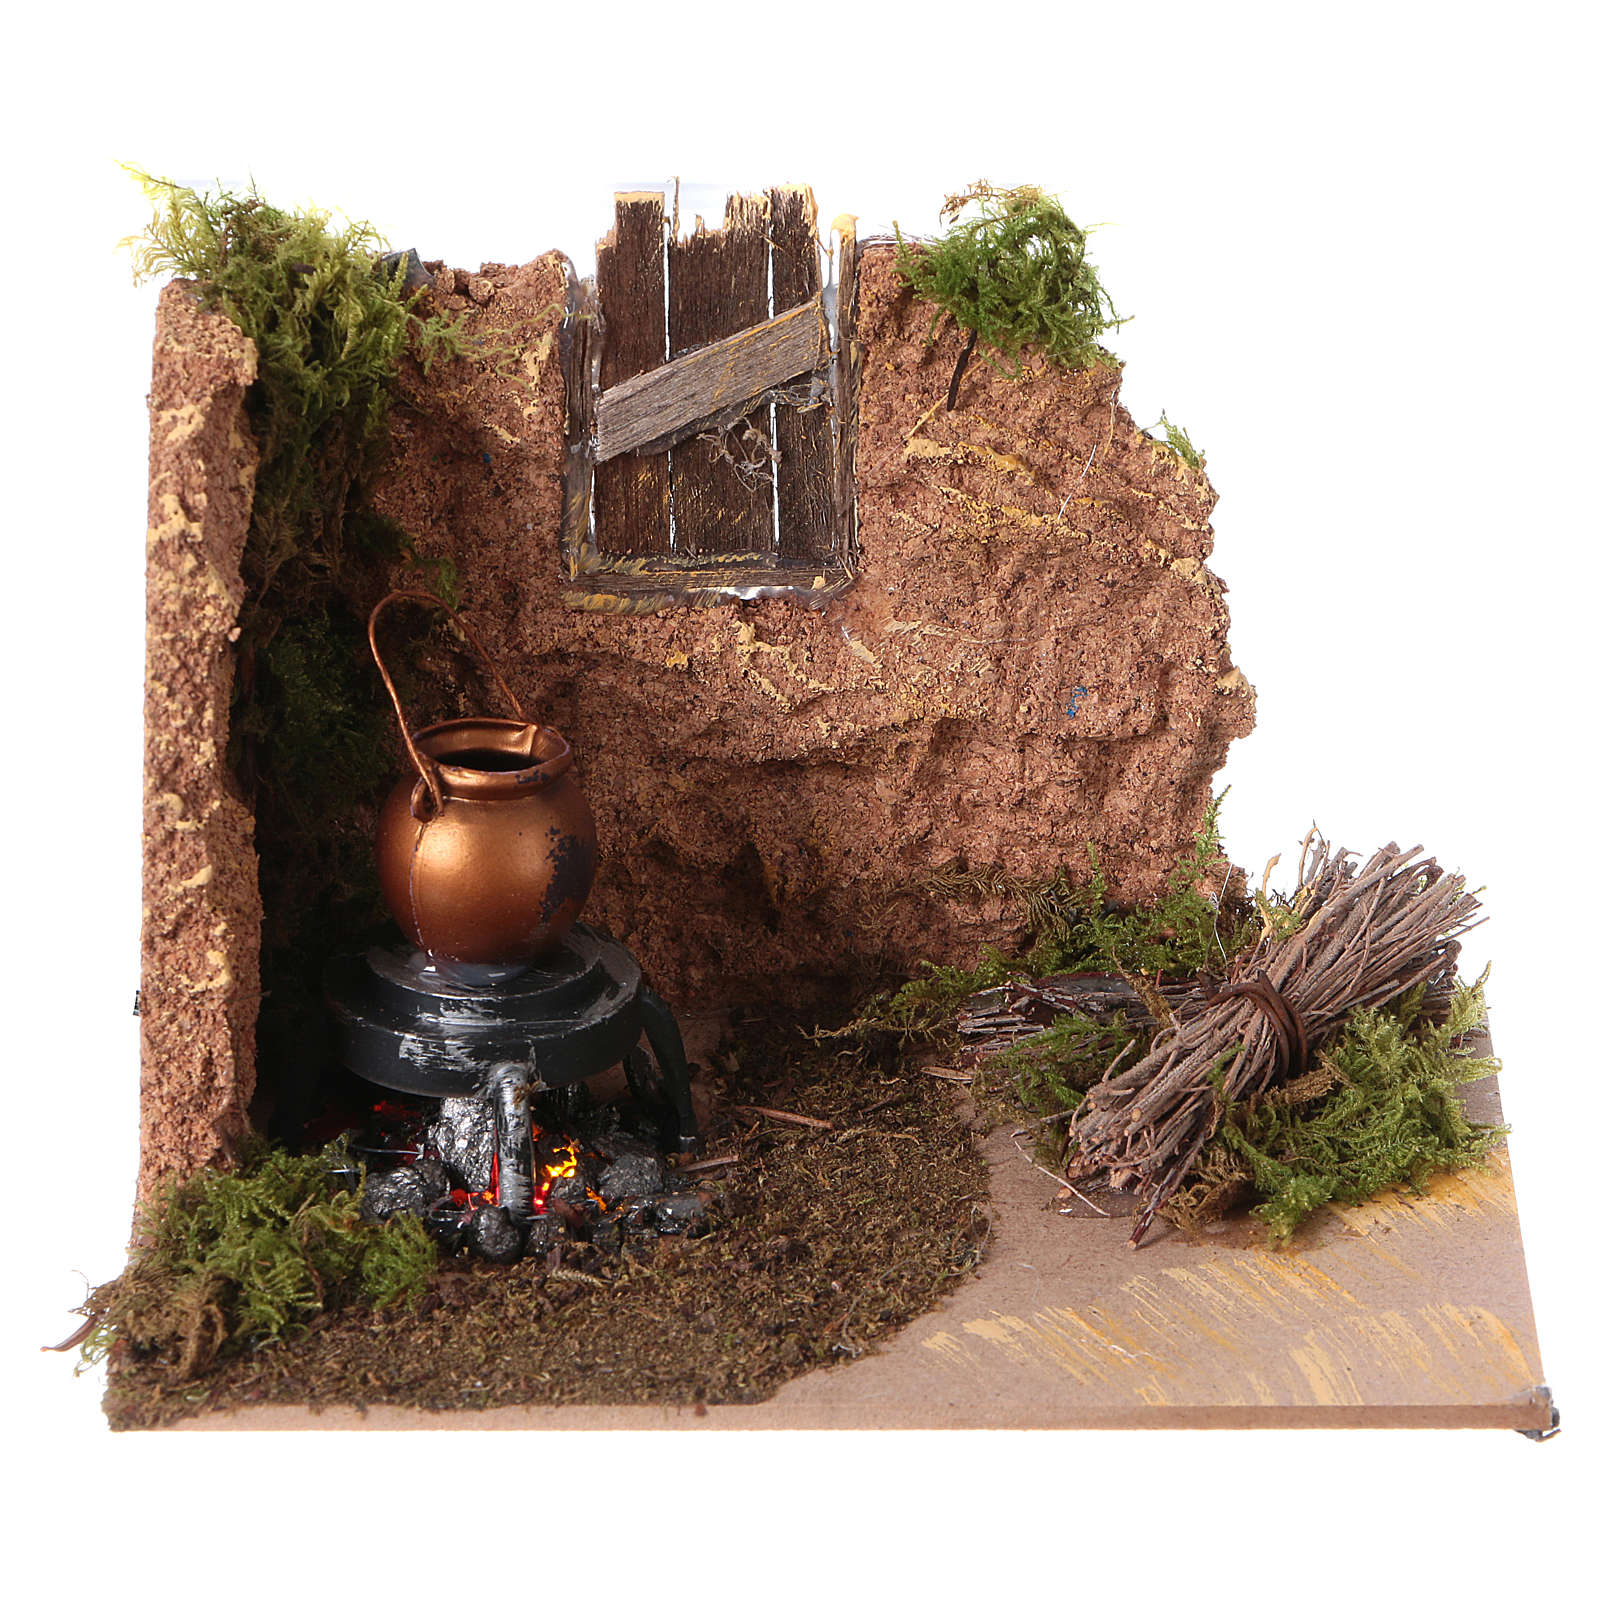 Nativity setting, battery powered fire measuring 10x15cm 4